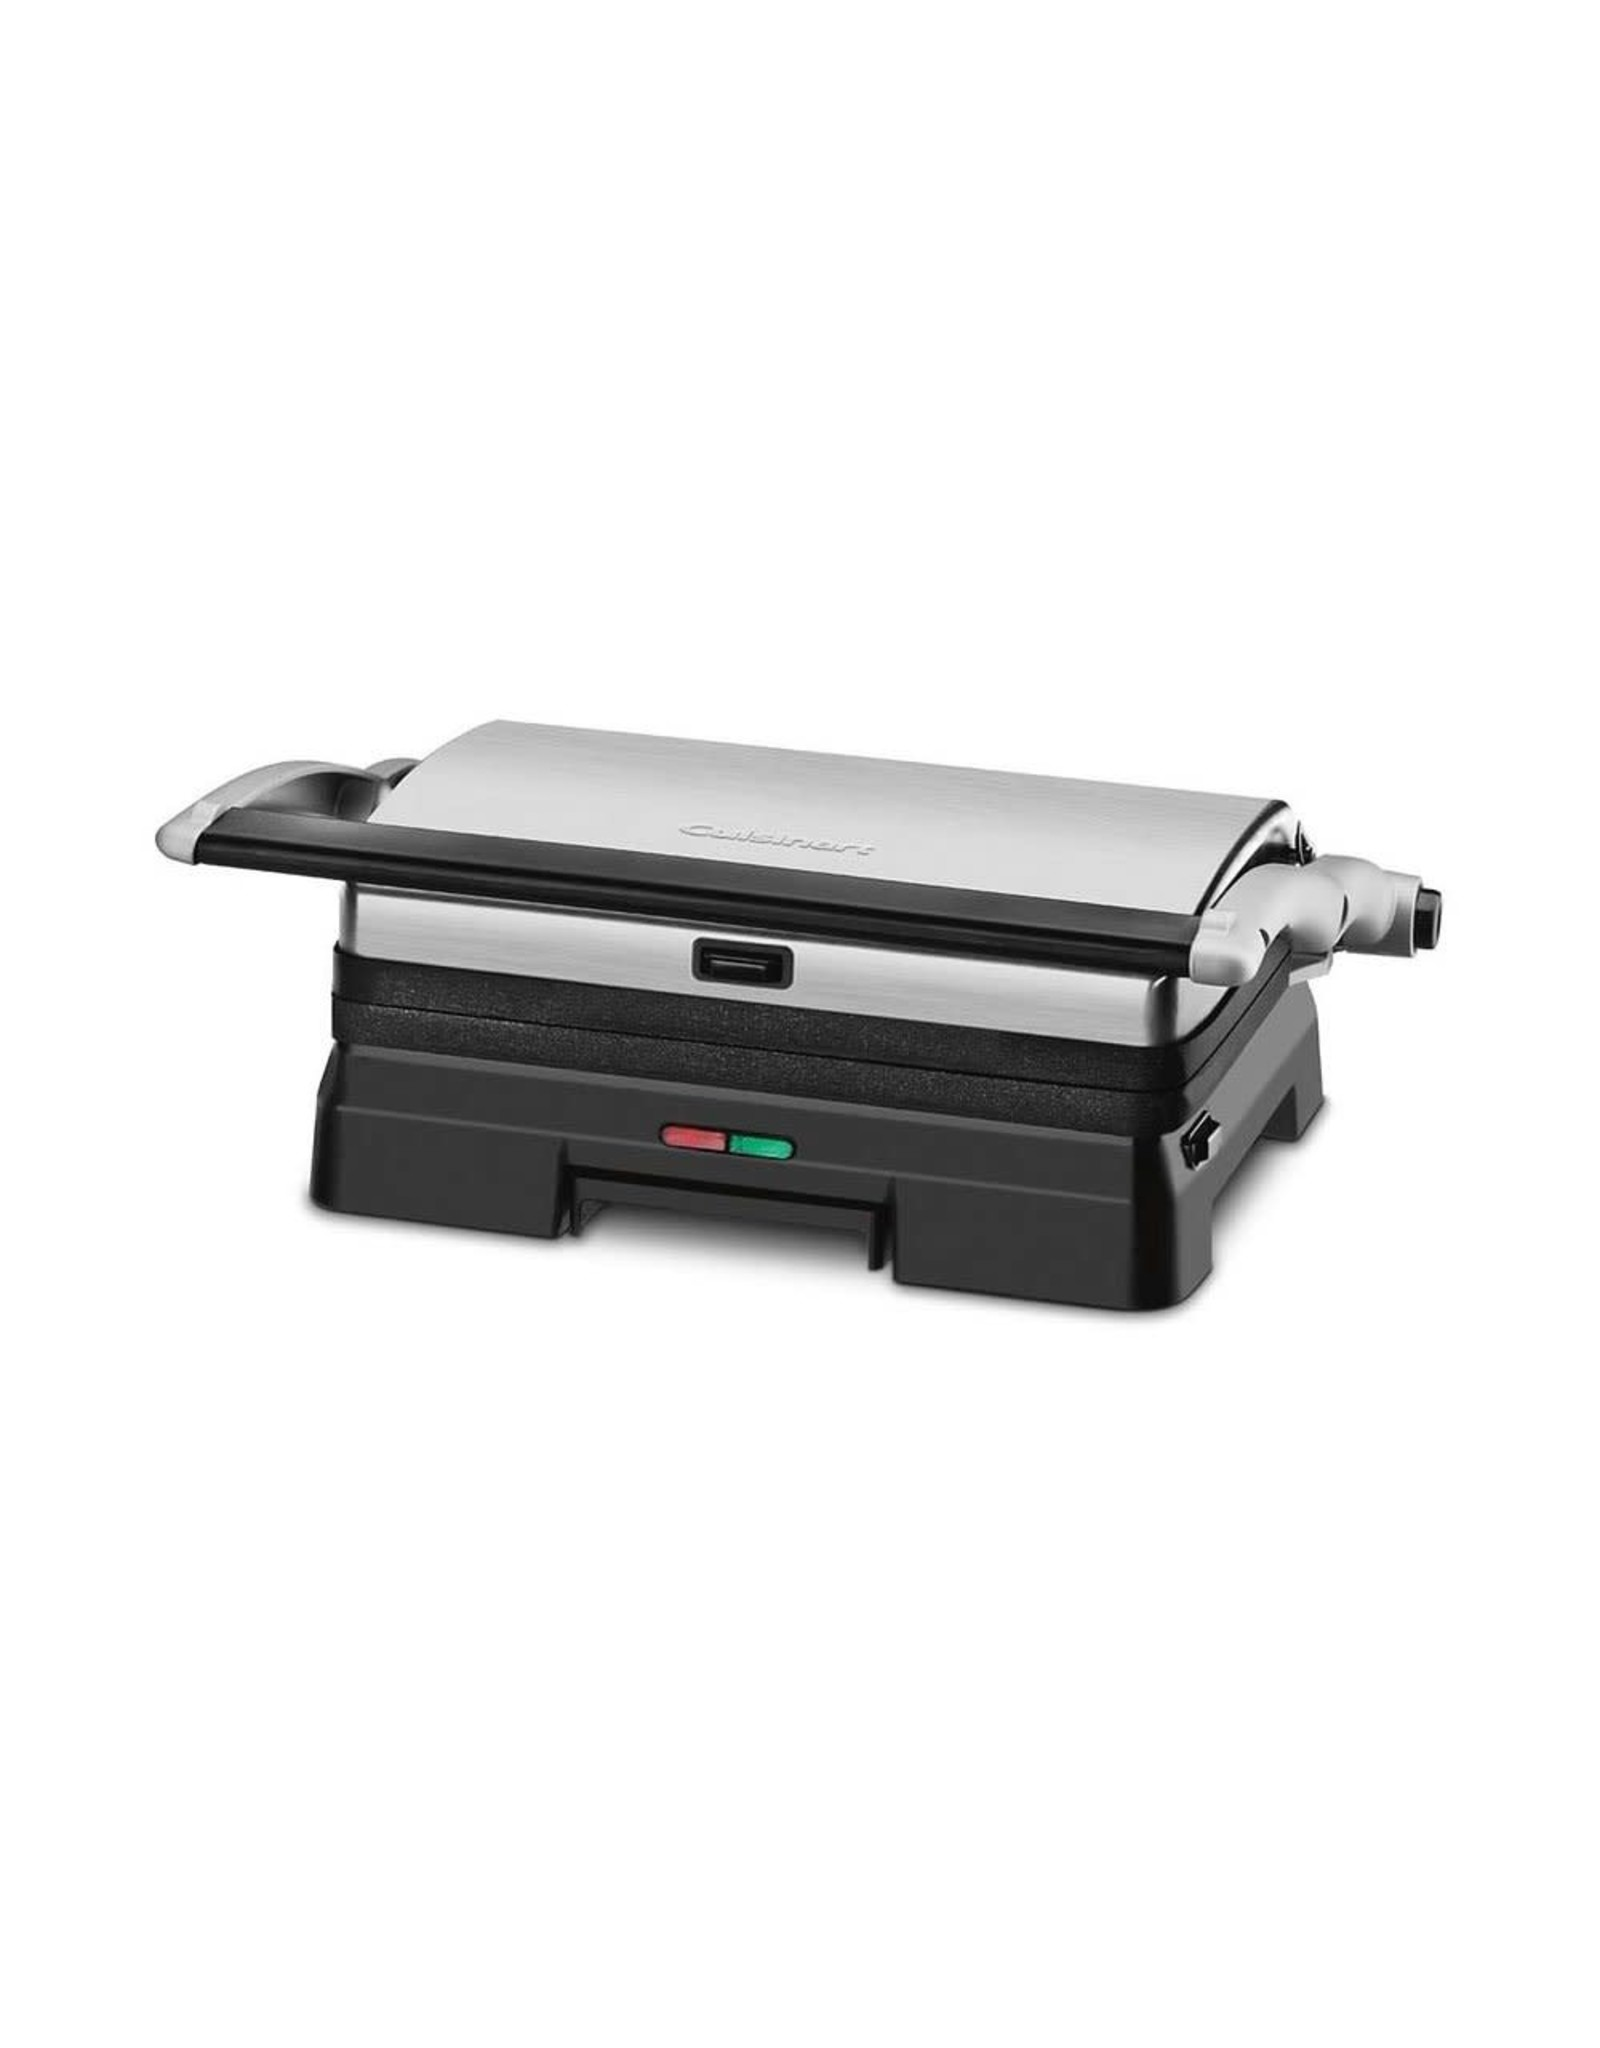 Imperial 2018 GRIDDLER GRILL & PANINI PRESS